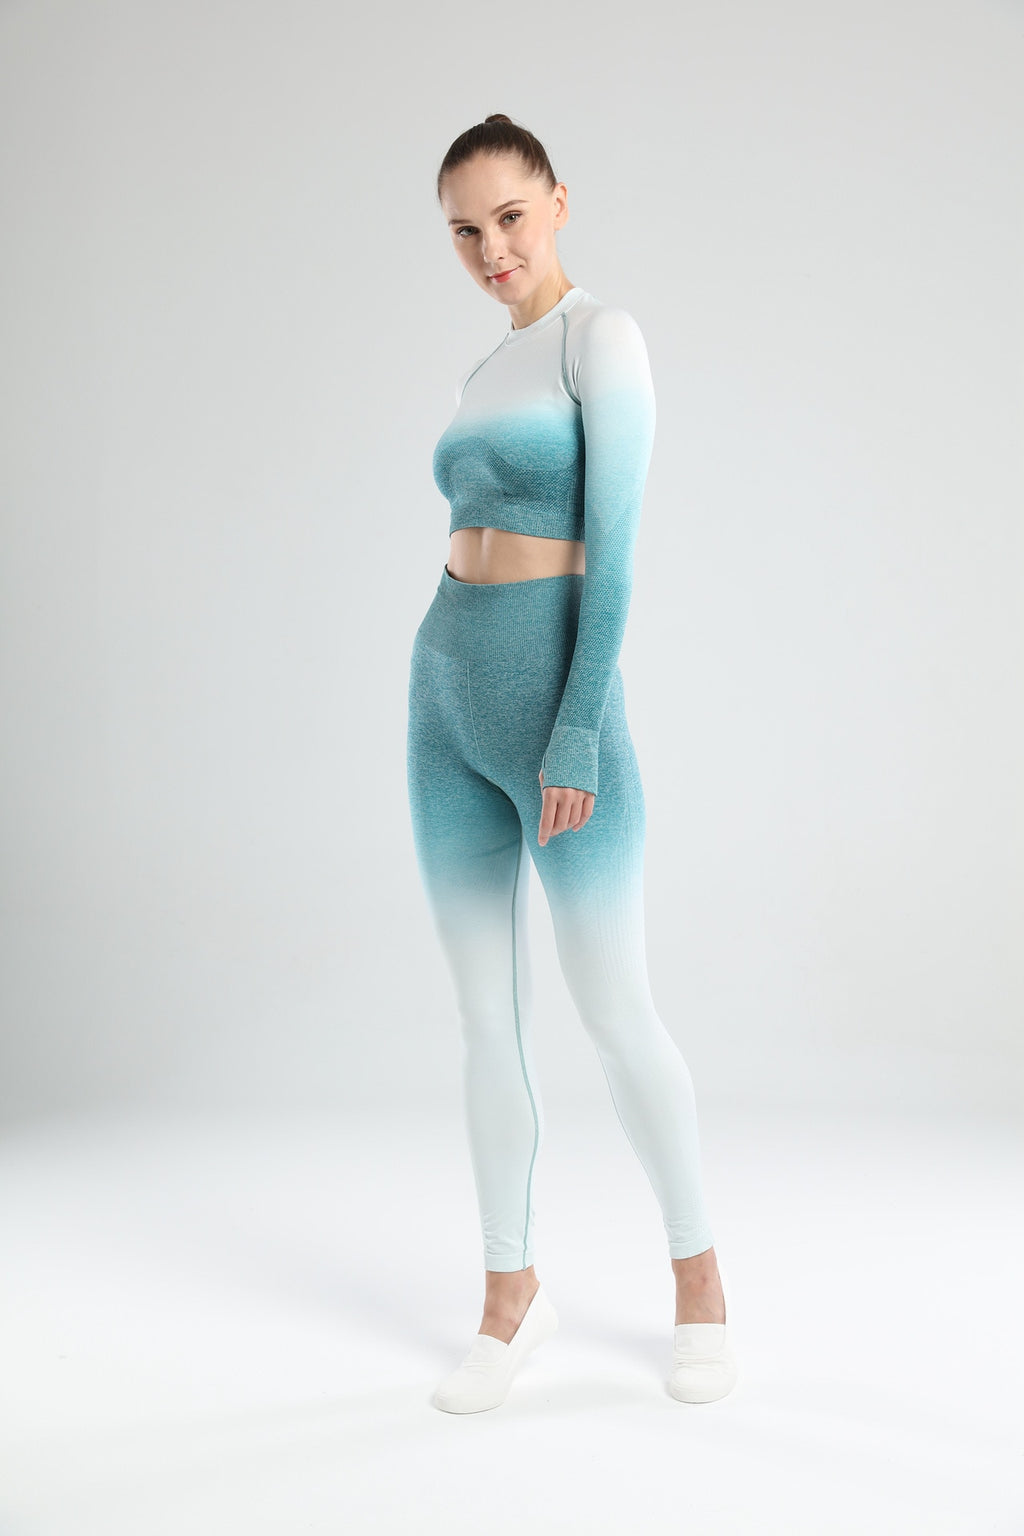 Astoria Seamless Ombre Legging - Teal